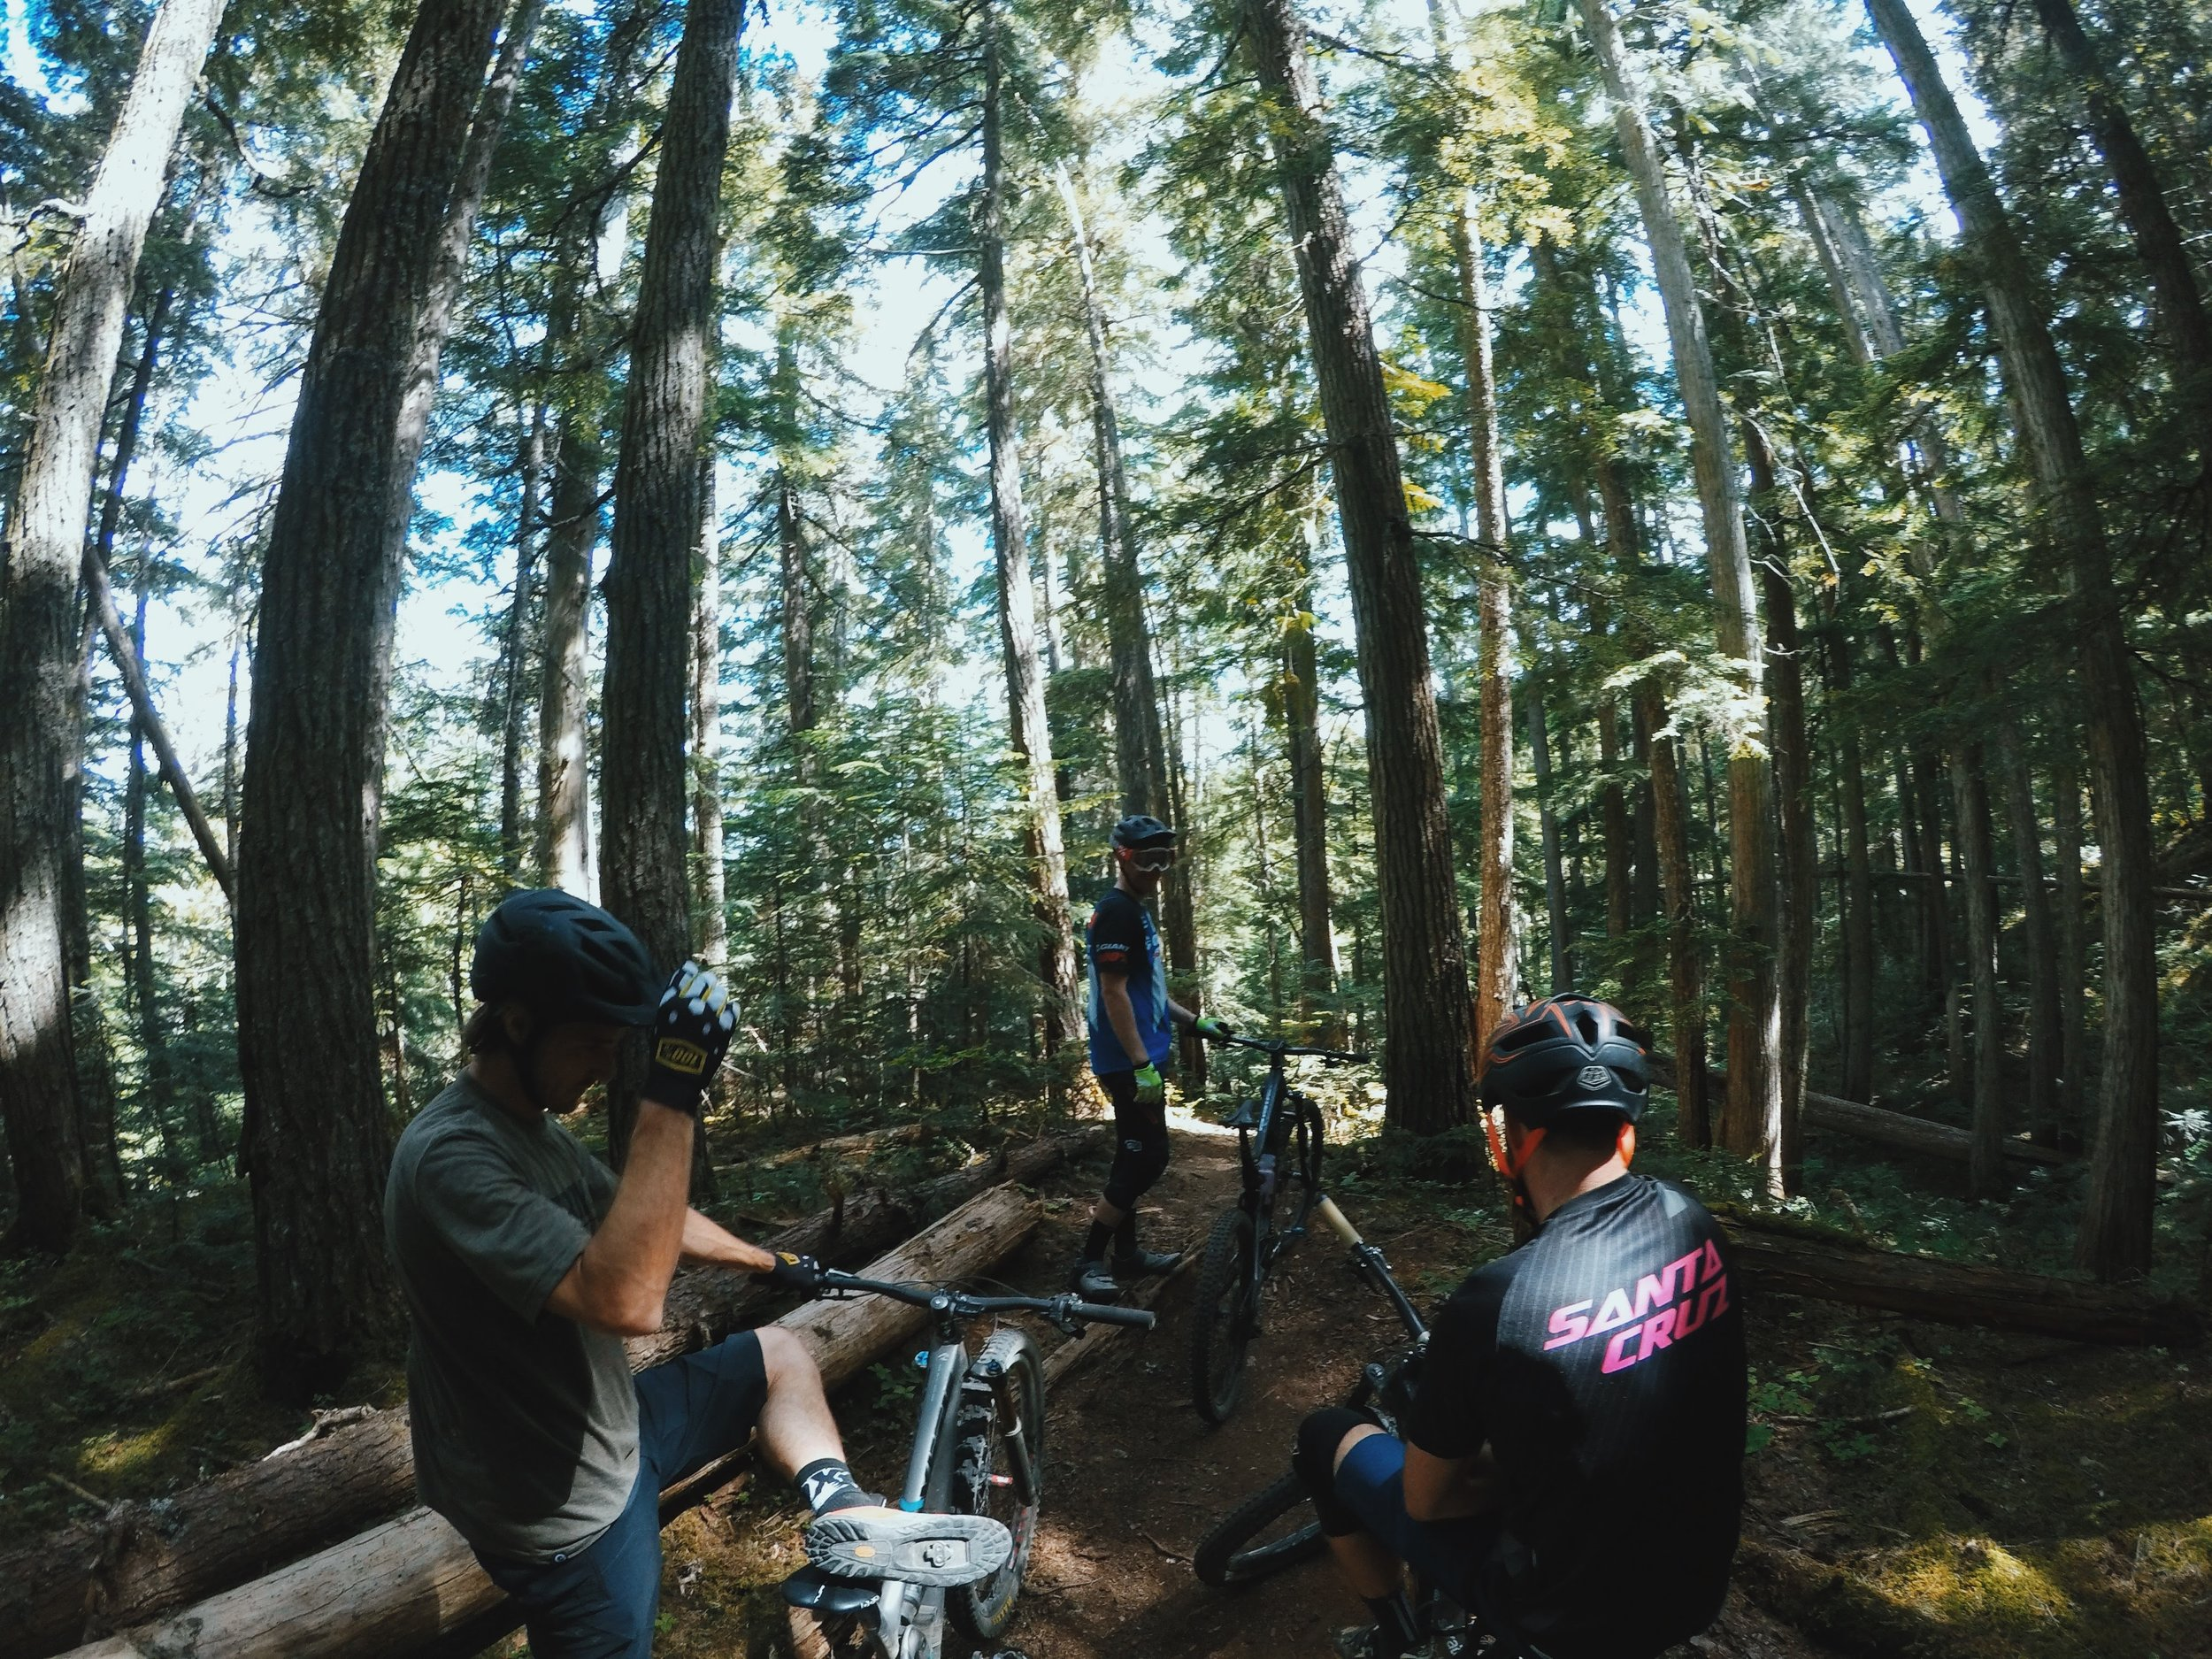 EWS pro and factory Giant pro, Josh Carlson, joined us in Whistler one day to show us the local trails on the Blackcomb side of the resort.